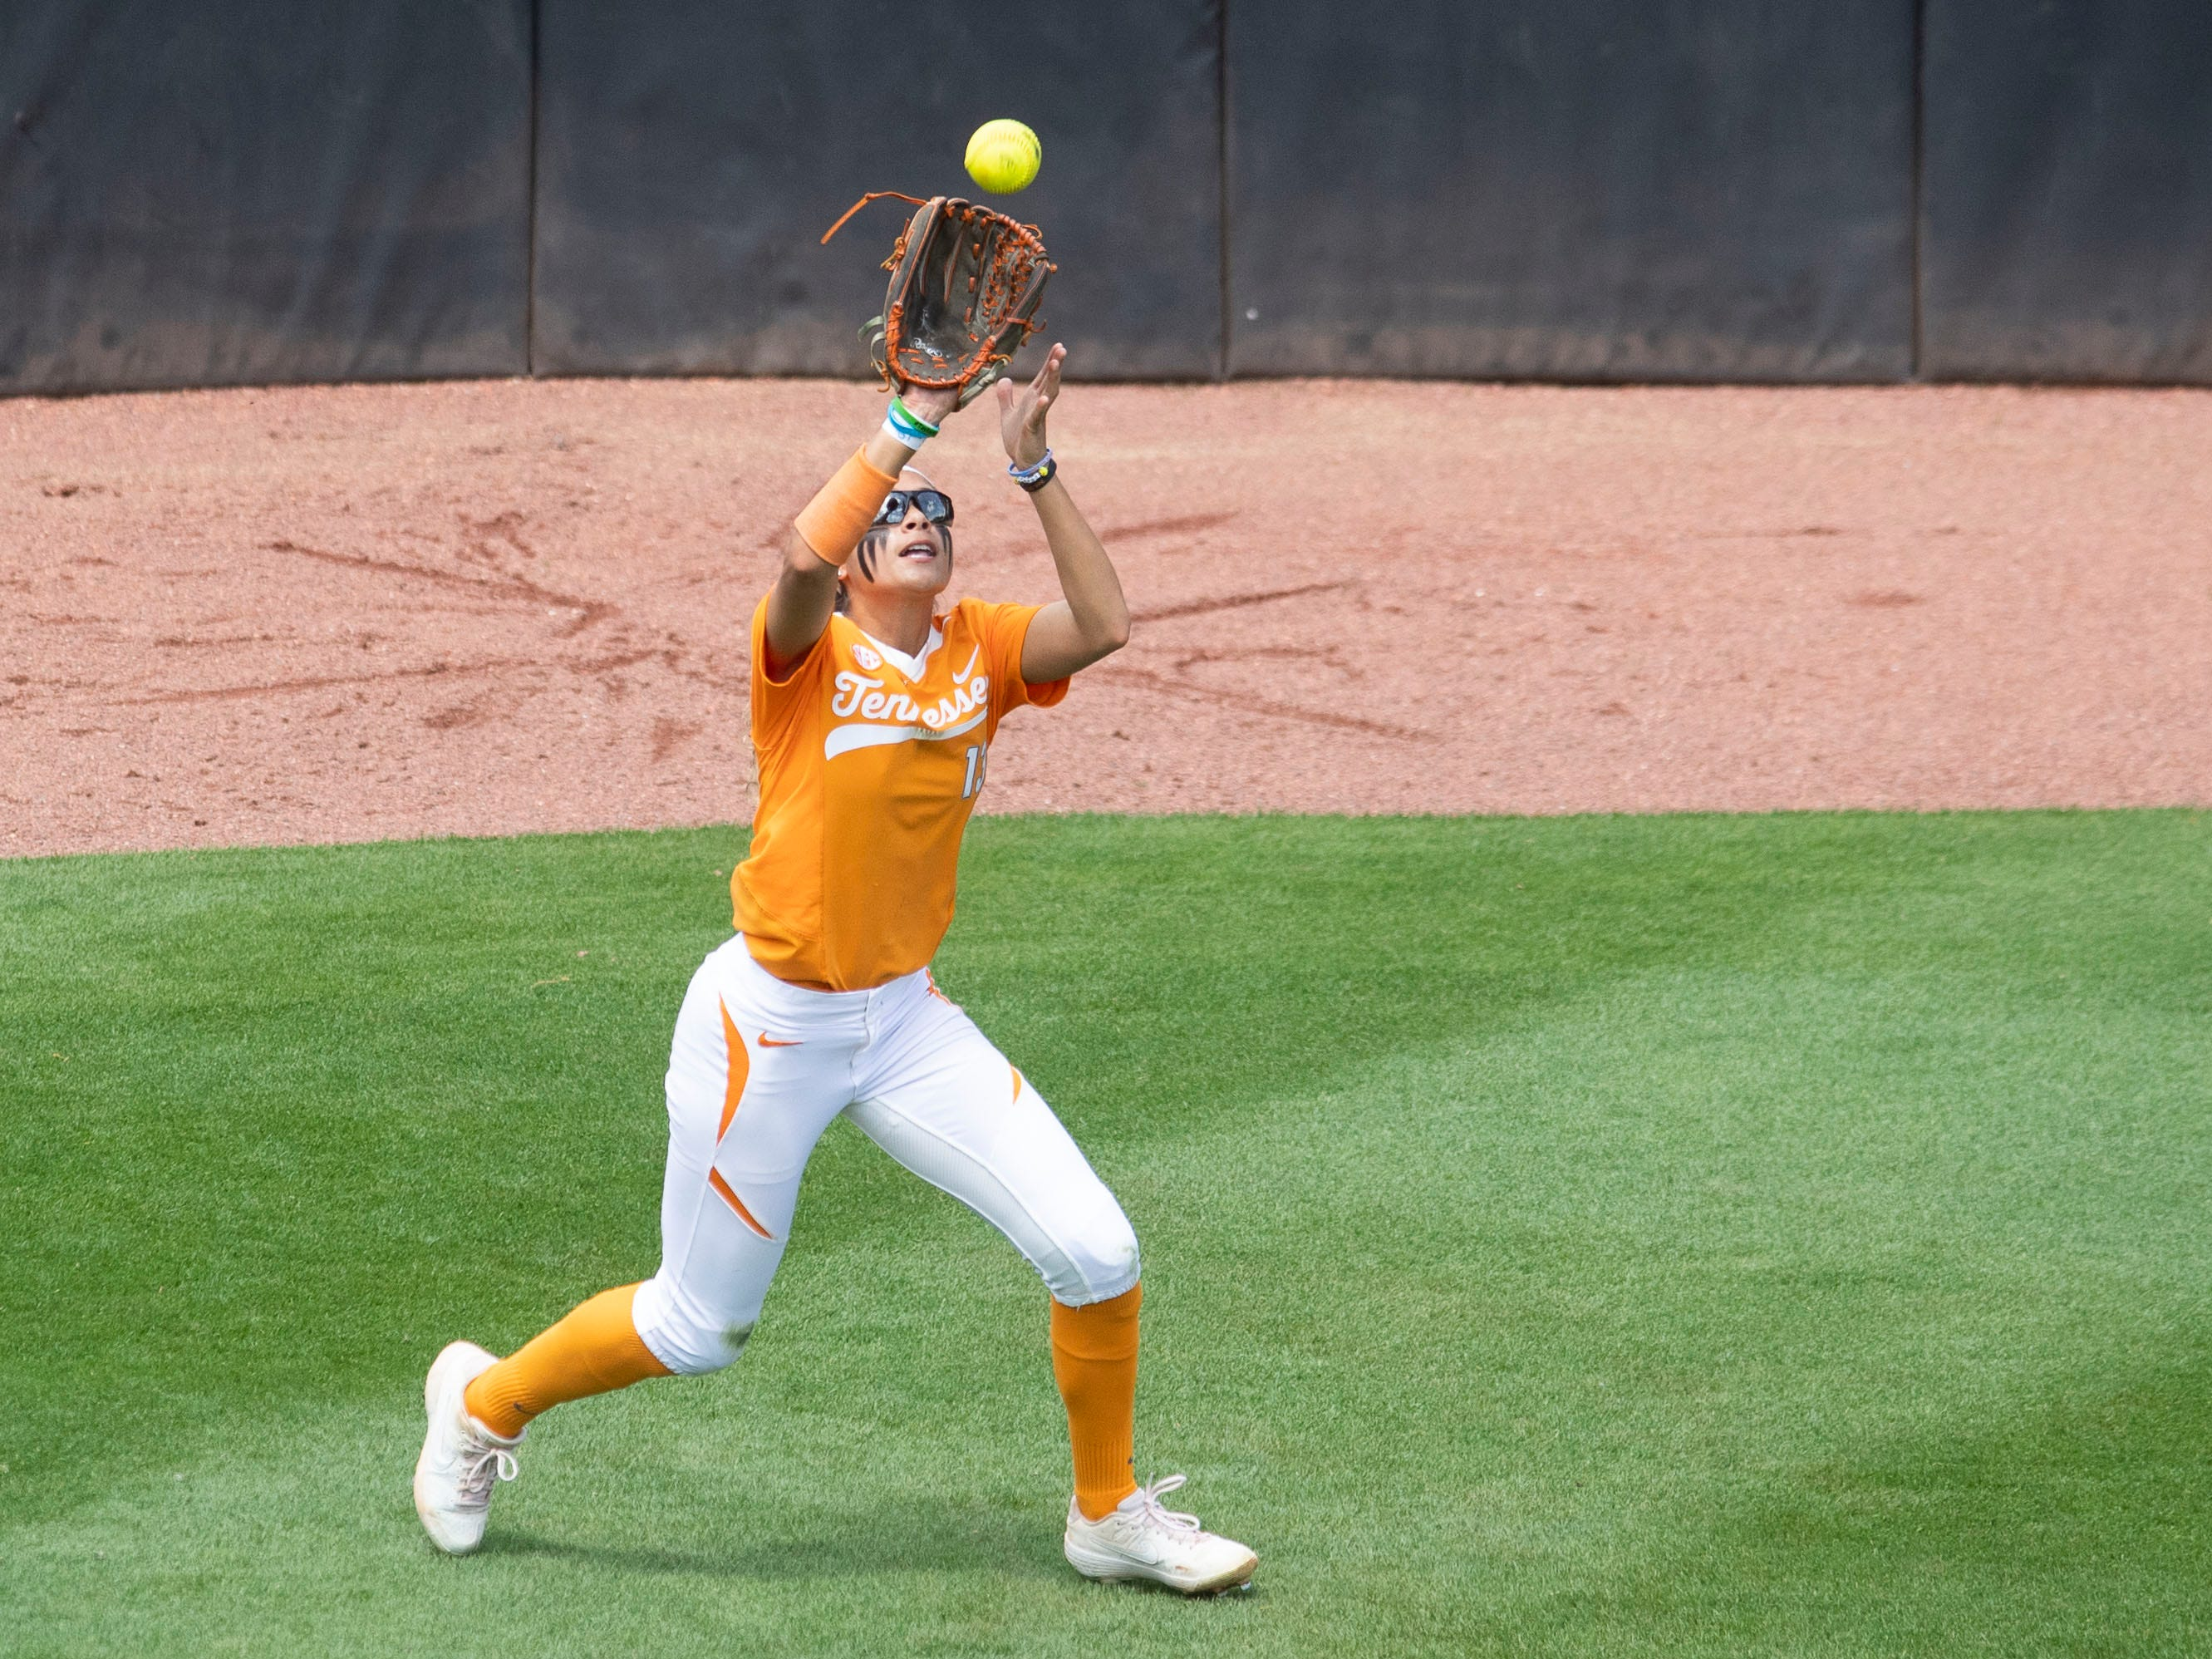 Tennessee's Amanda Ayala (13) catches a fly ball against Mississippi State at Sherri Parker Lee Stadium on Sunday, April 14, 2019.